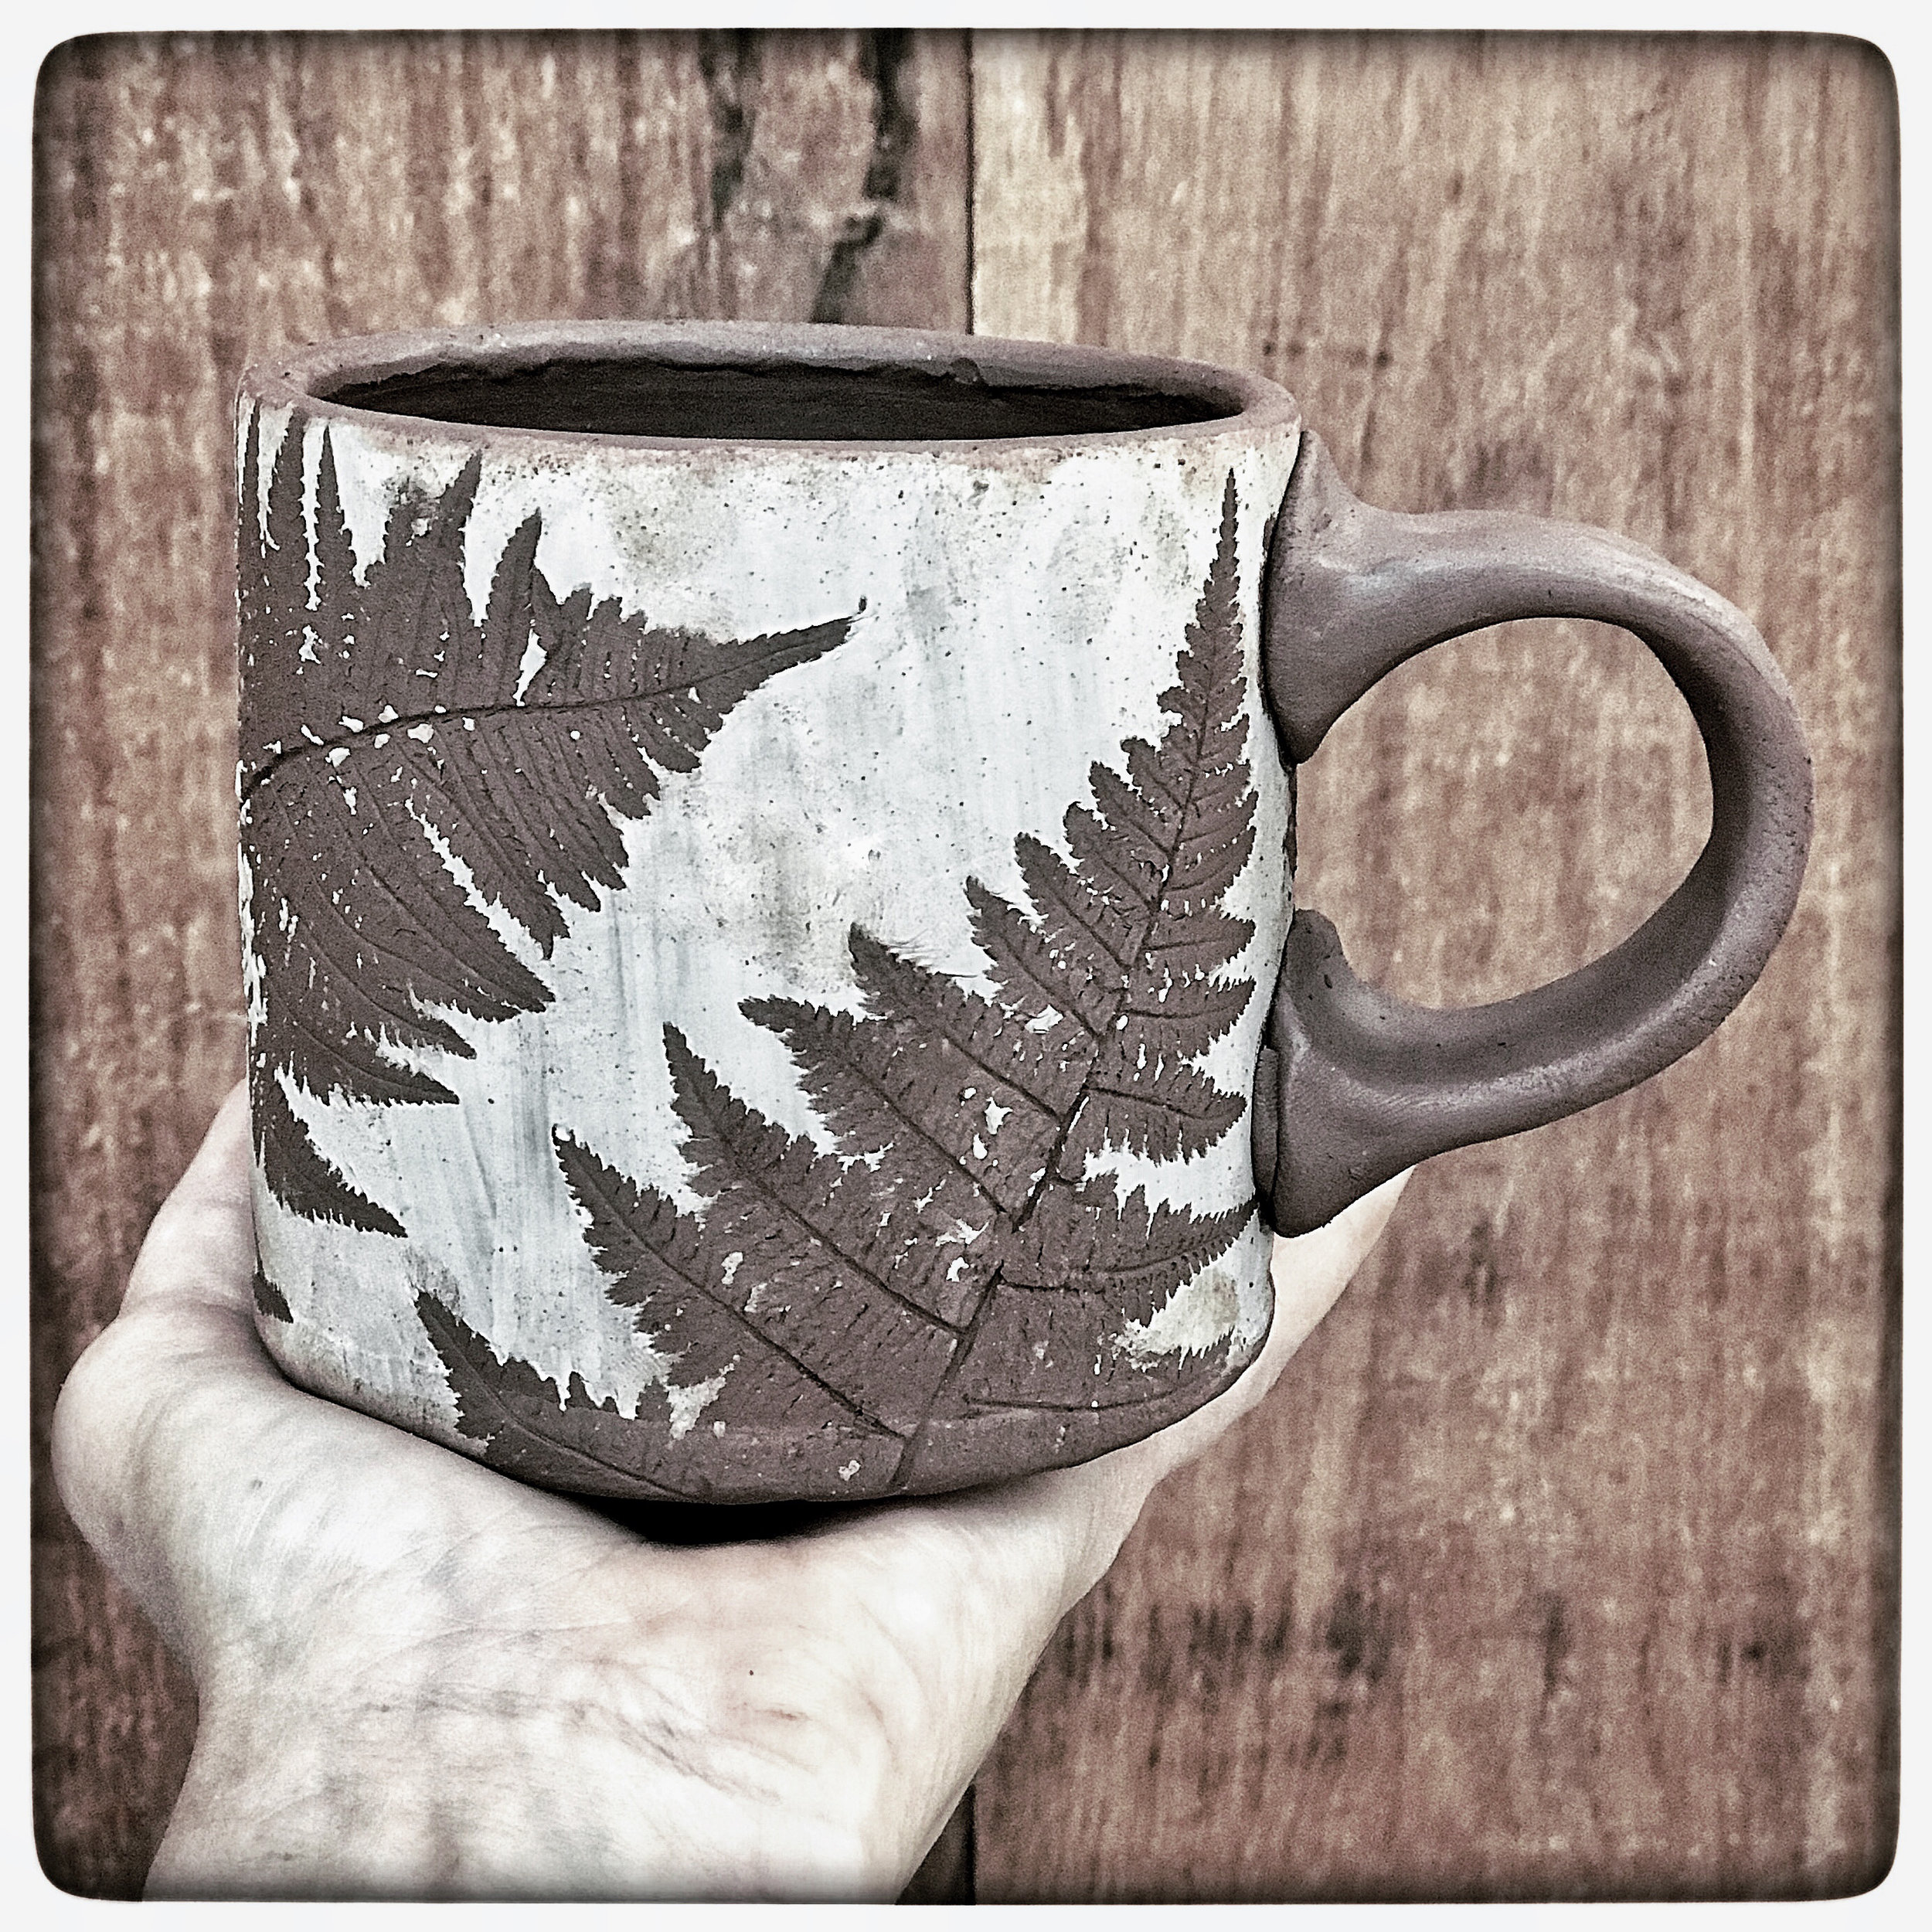 FunctionalHandmadePottery - It all begins with a lump of clay.